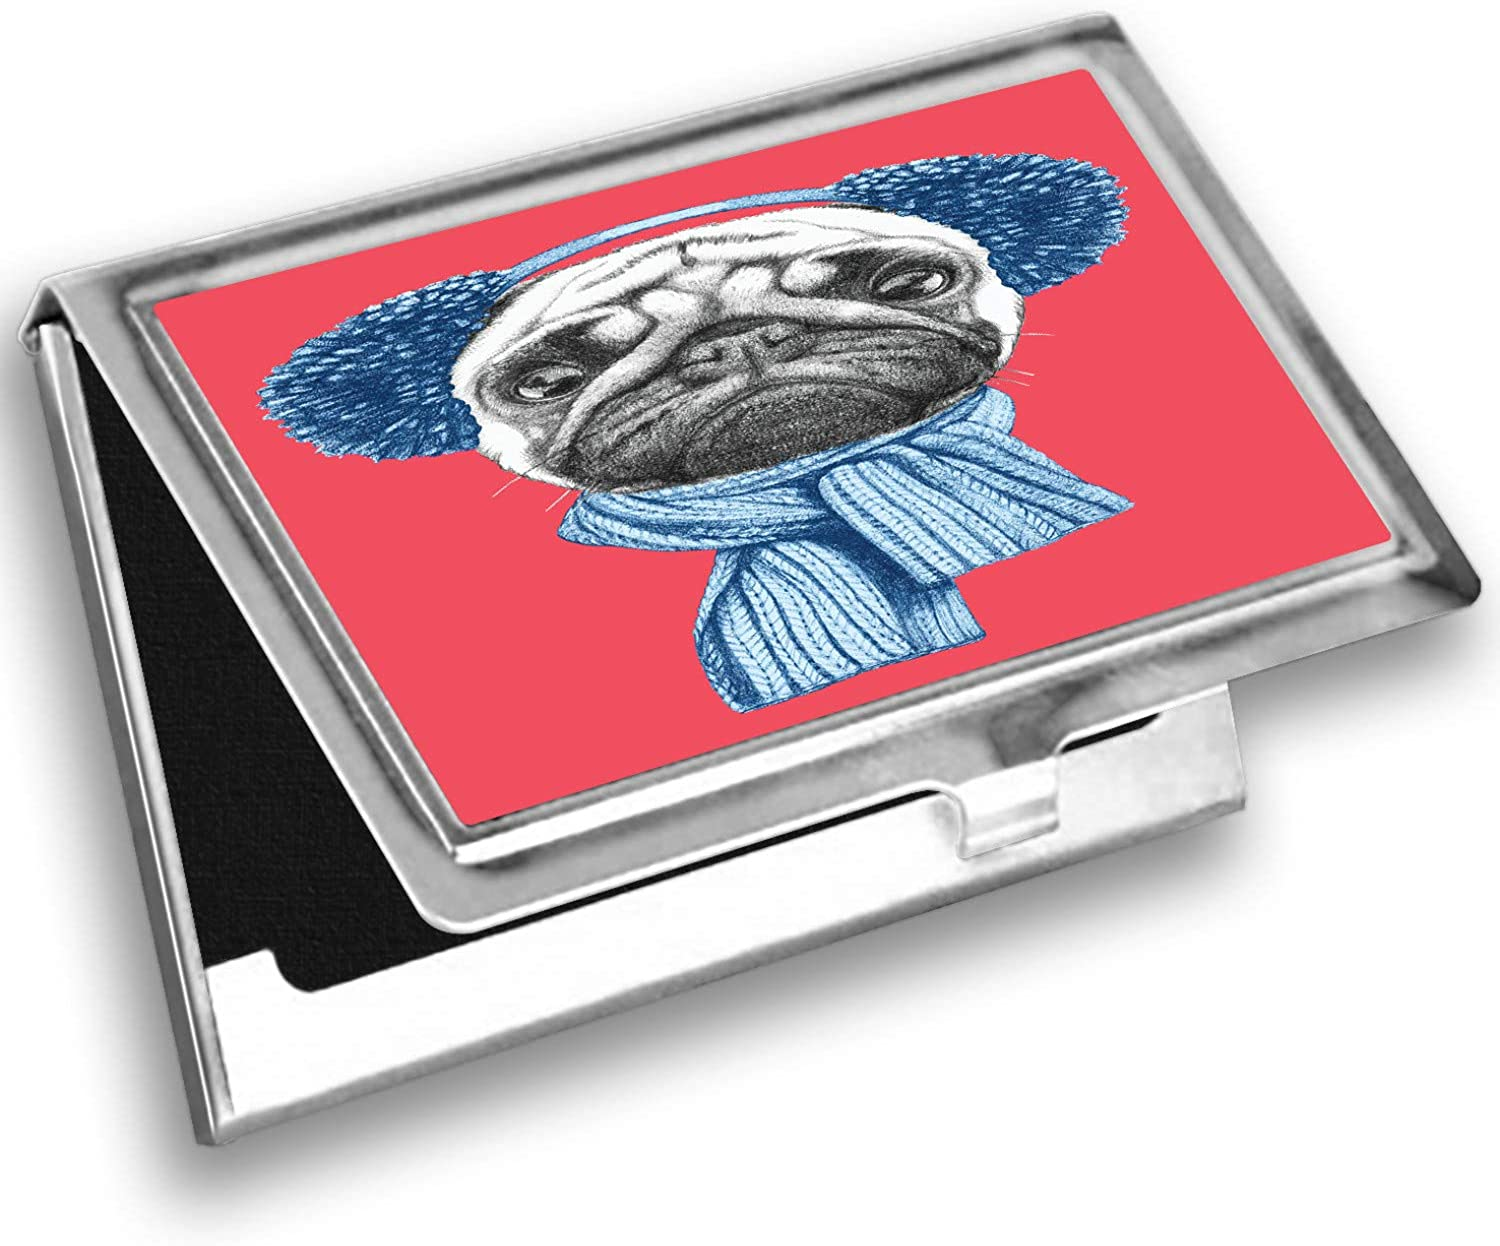 Ambesonne Pug Card Holder, Winter Dog with Earmuffs, Metal Card Wallet